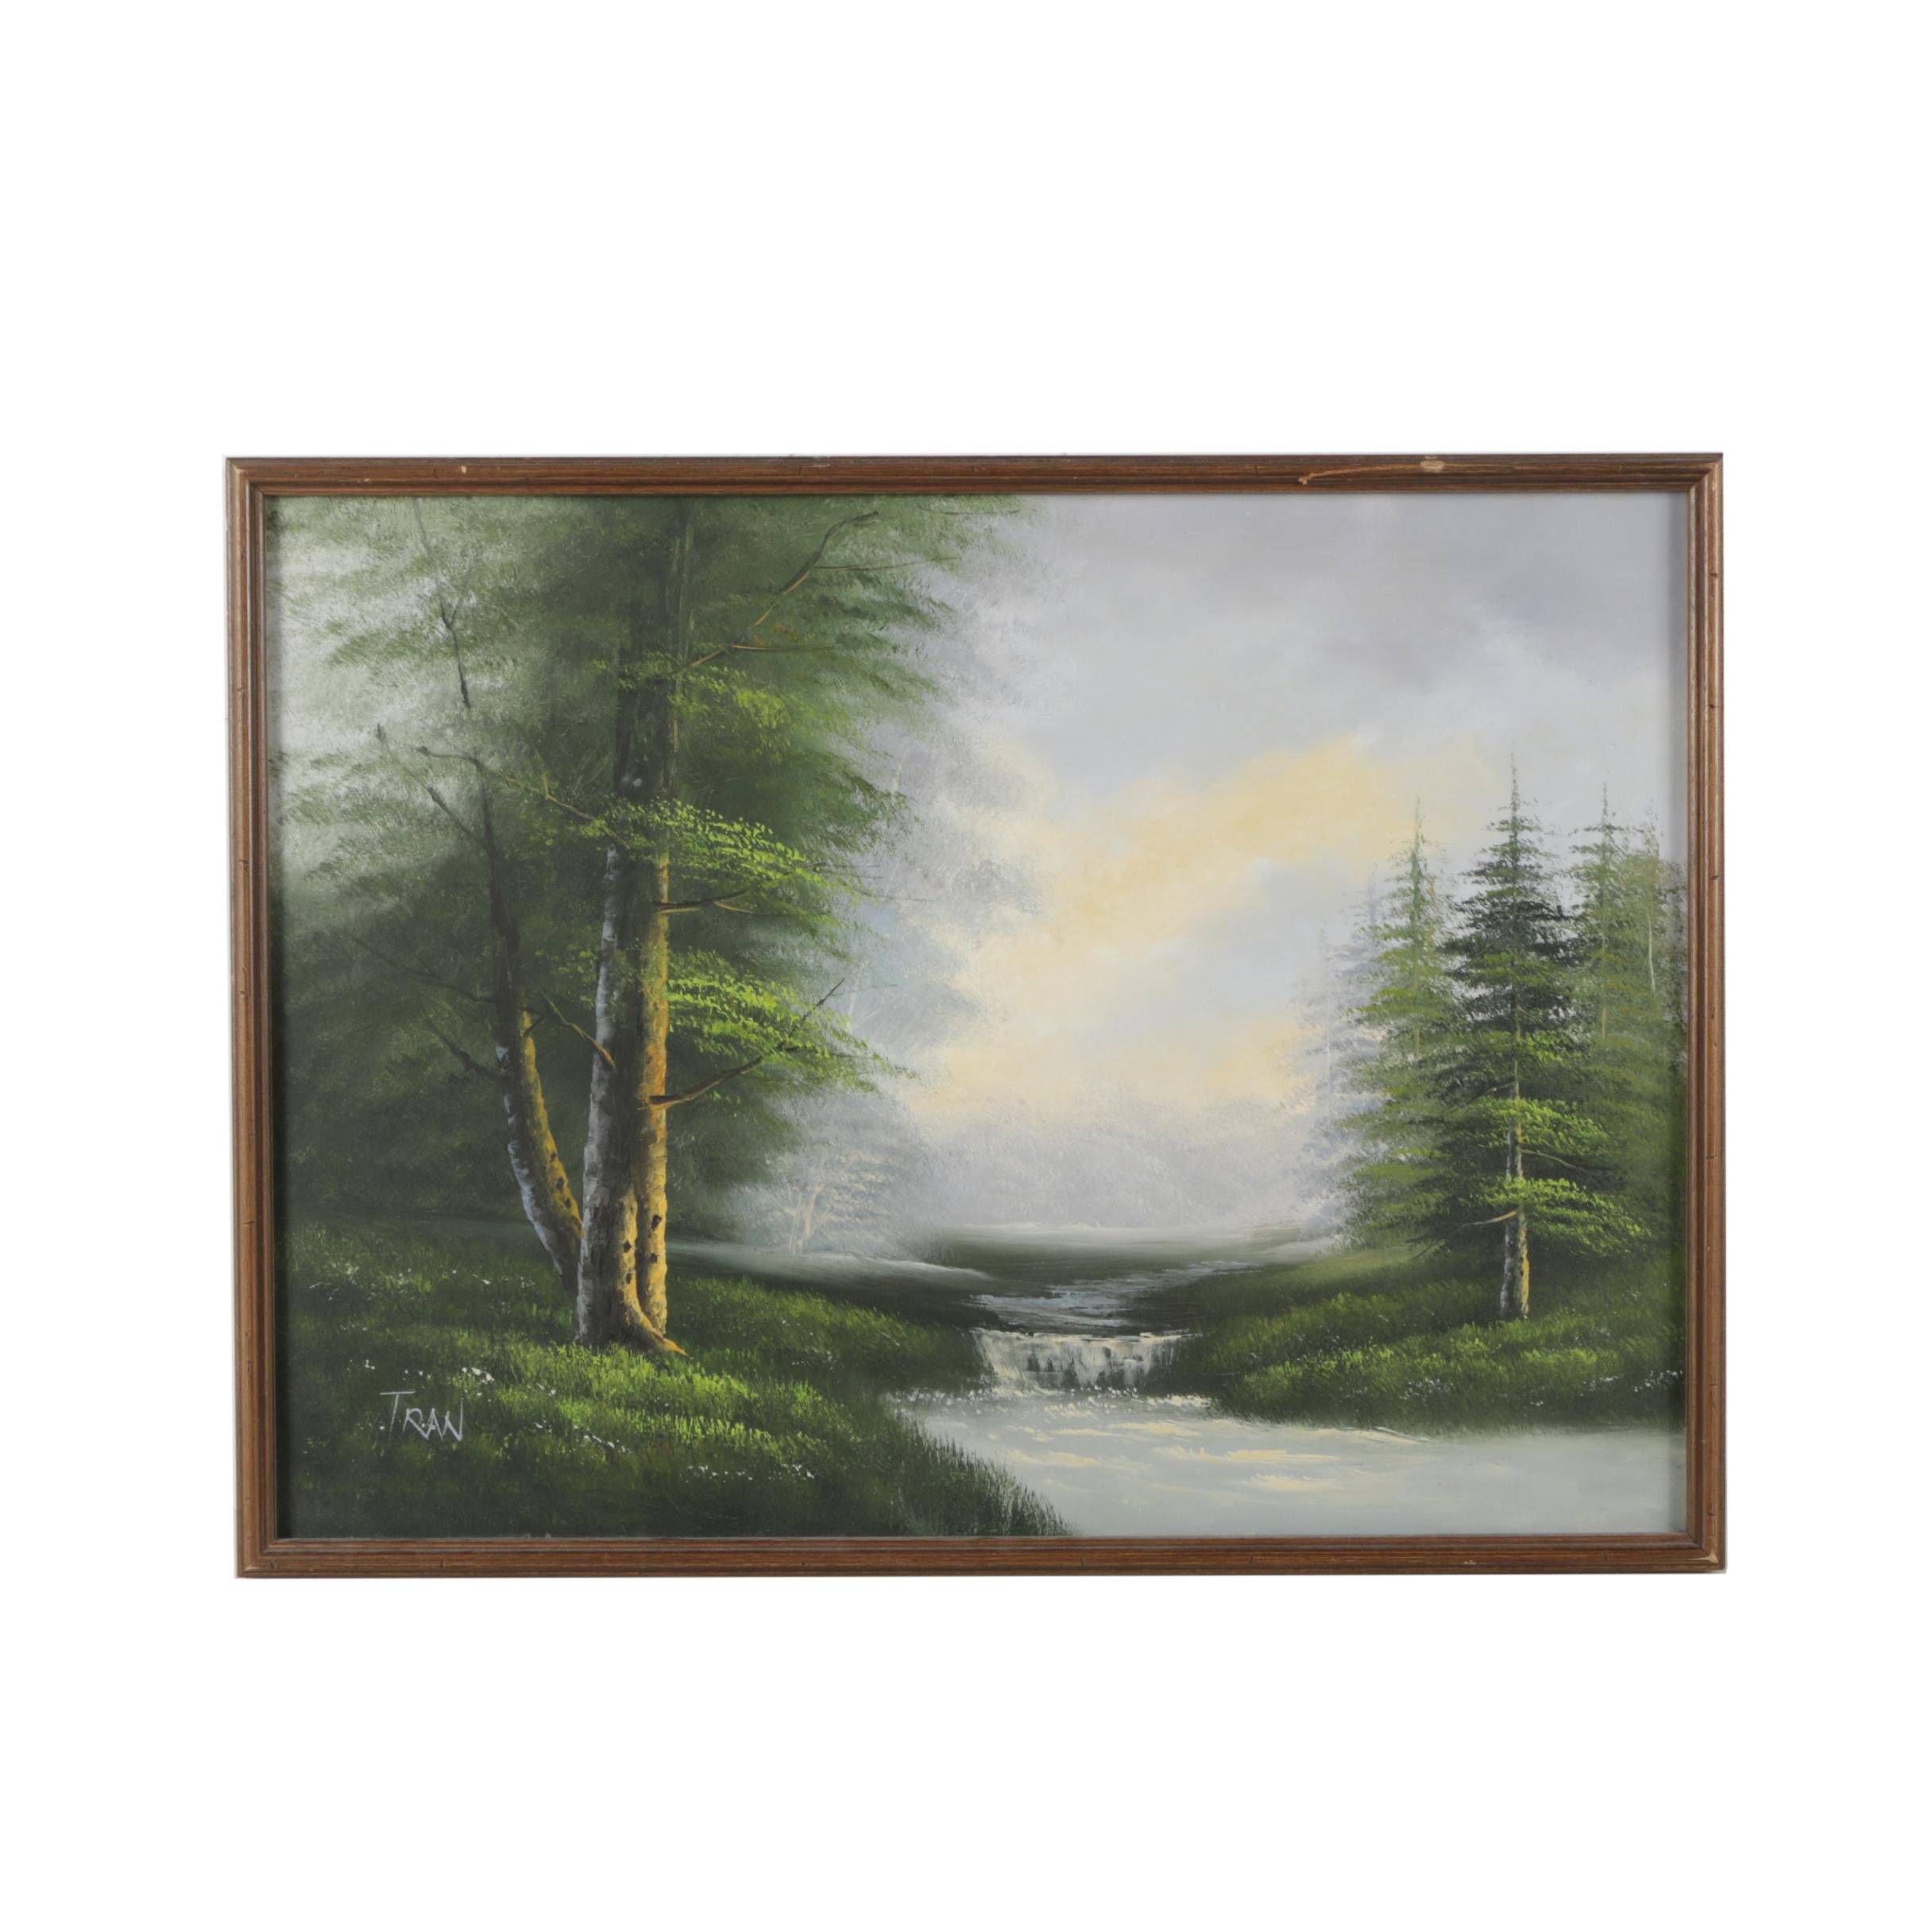 Tran Oil Painting of Forest Scene